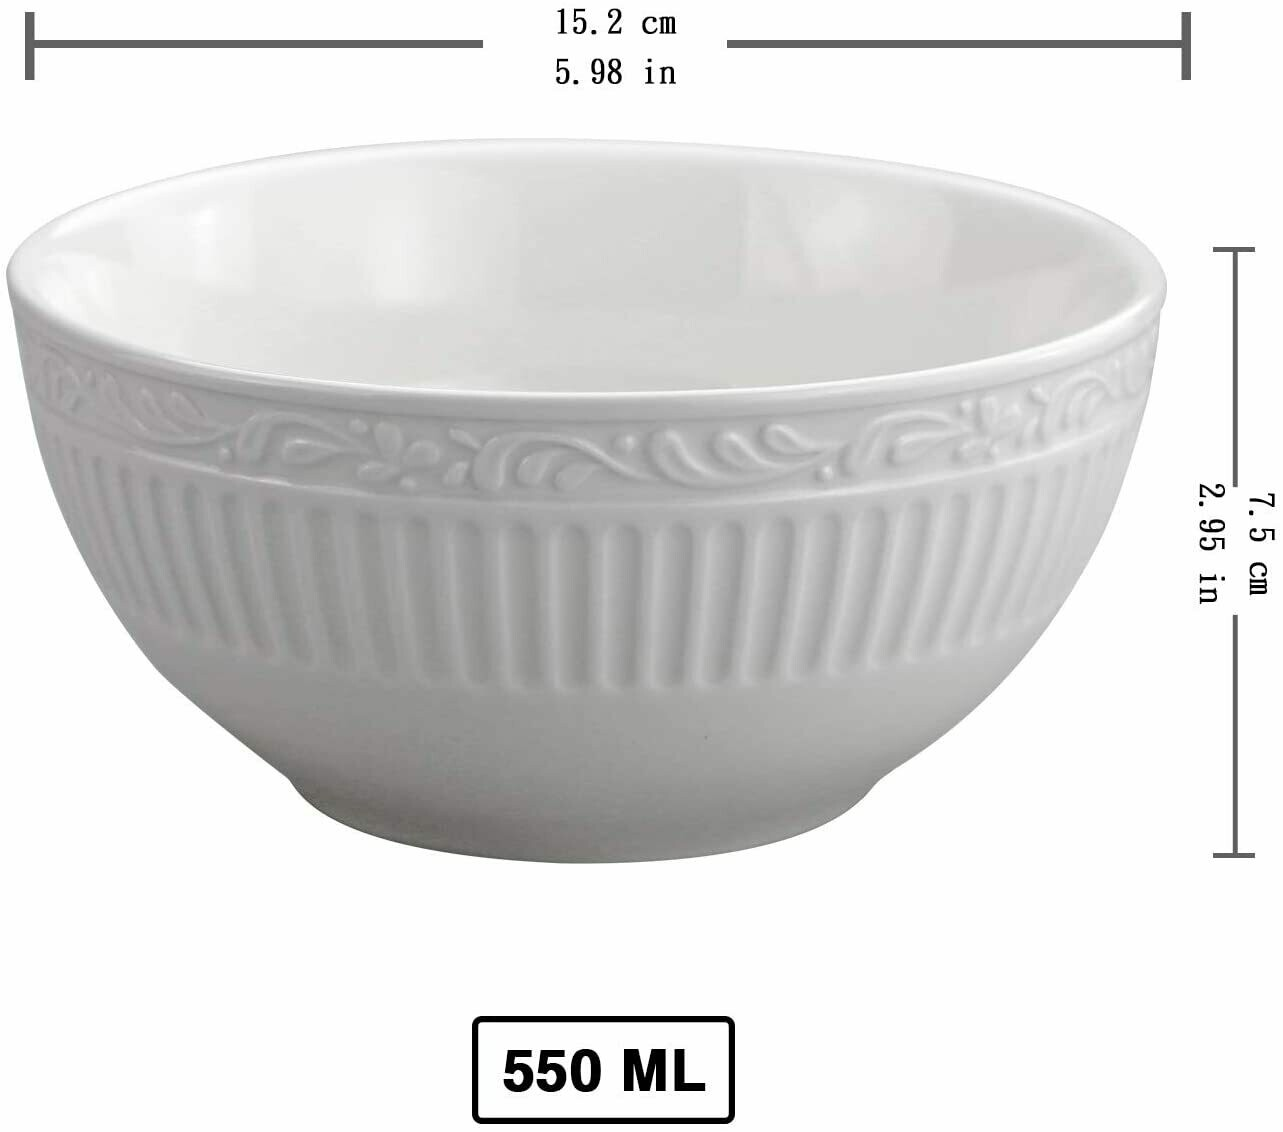 ceramic dinnerware large kitchen bowls serving set for cereal soup white set of 4 550 ml youth bakery